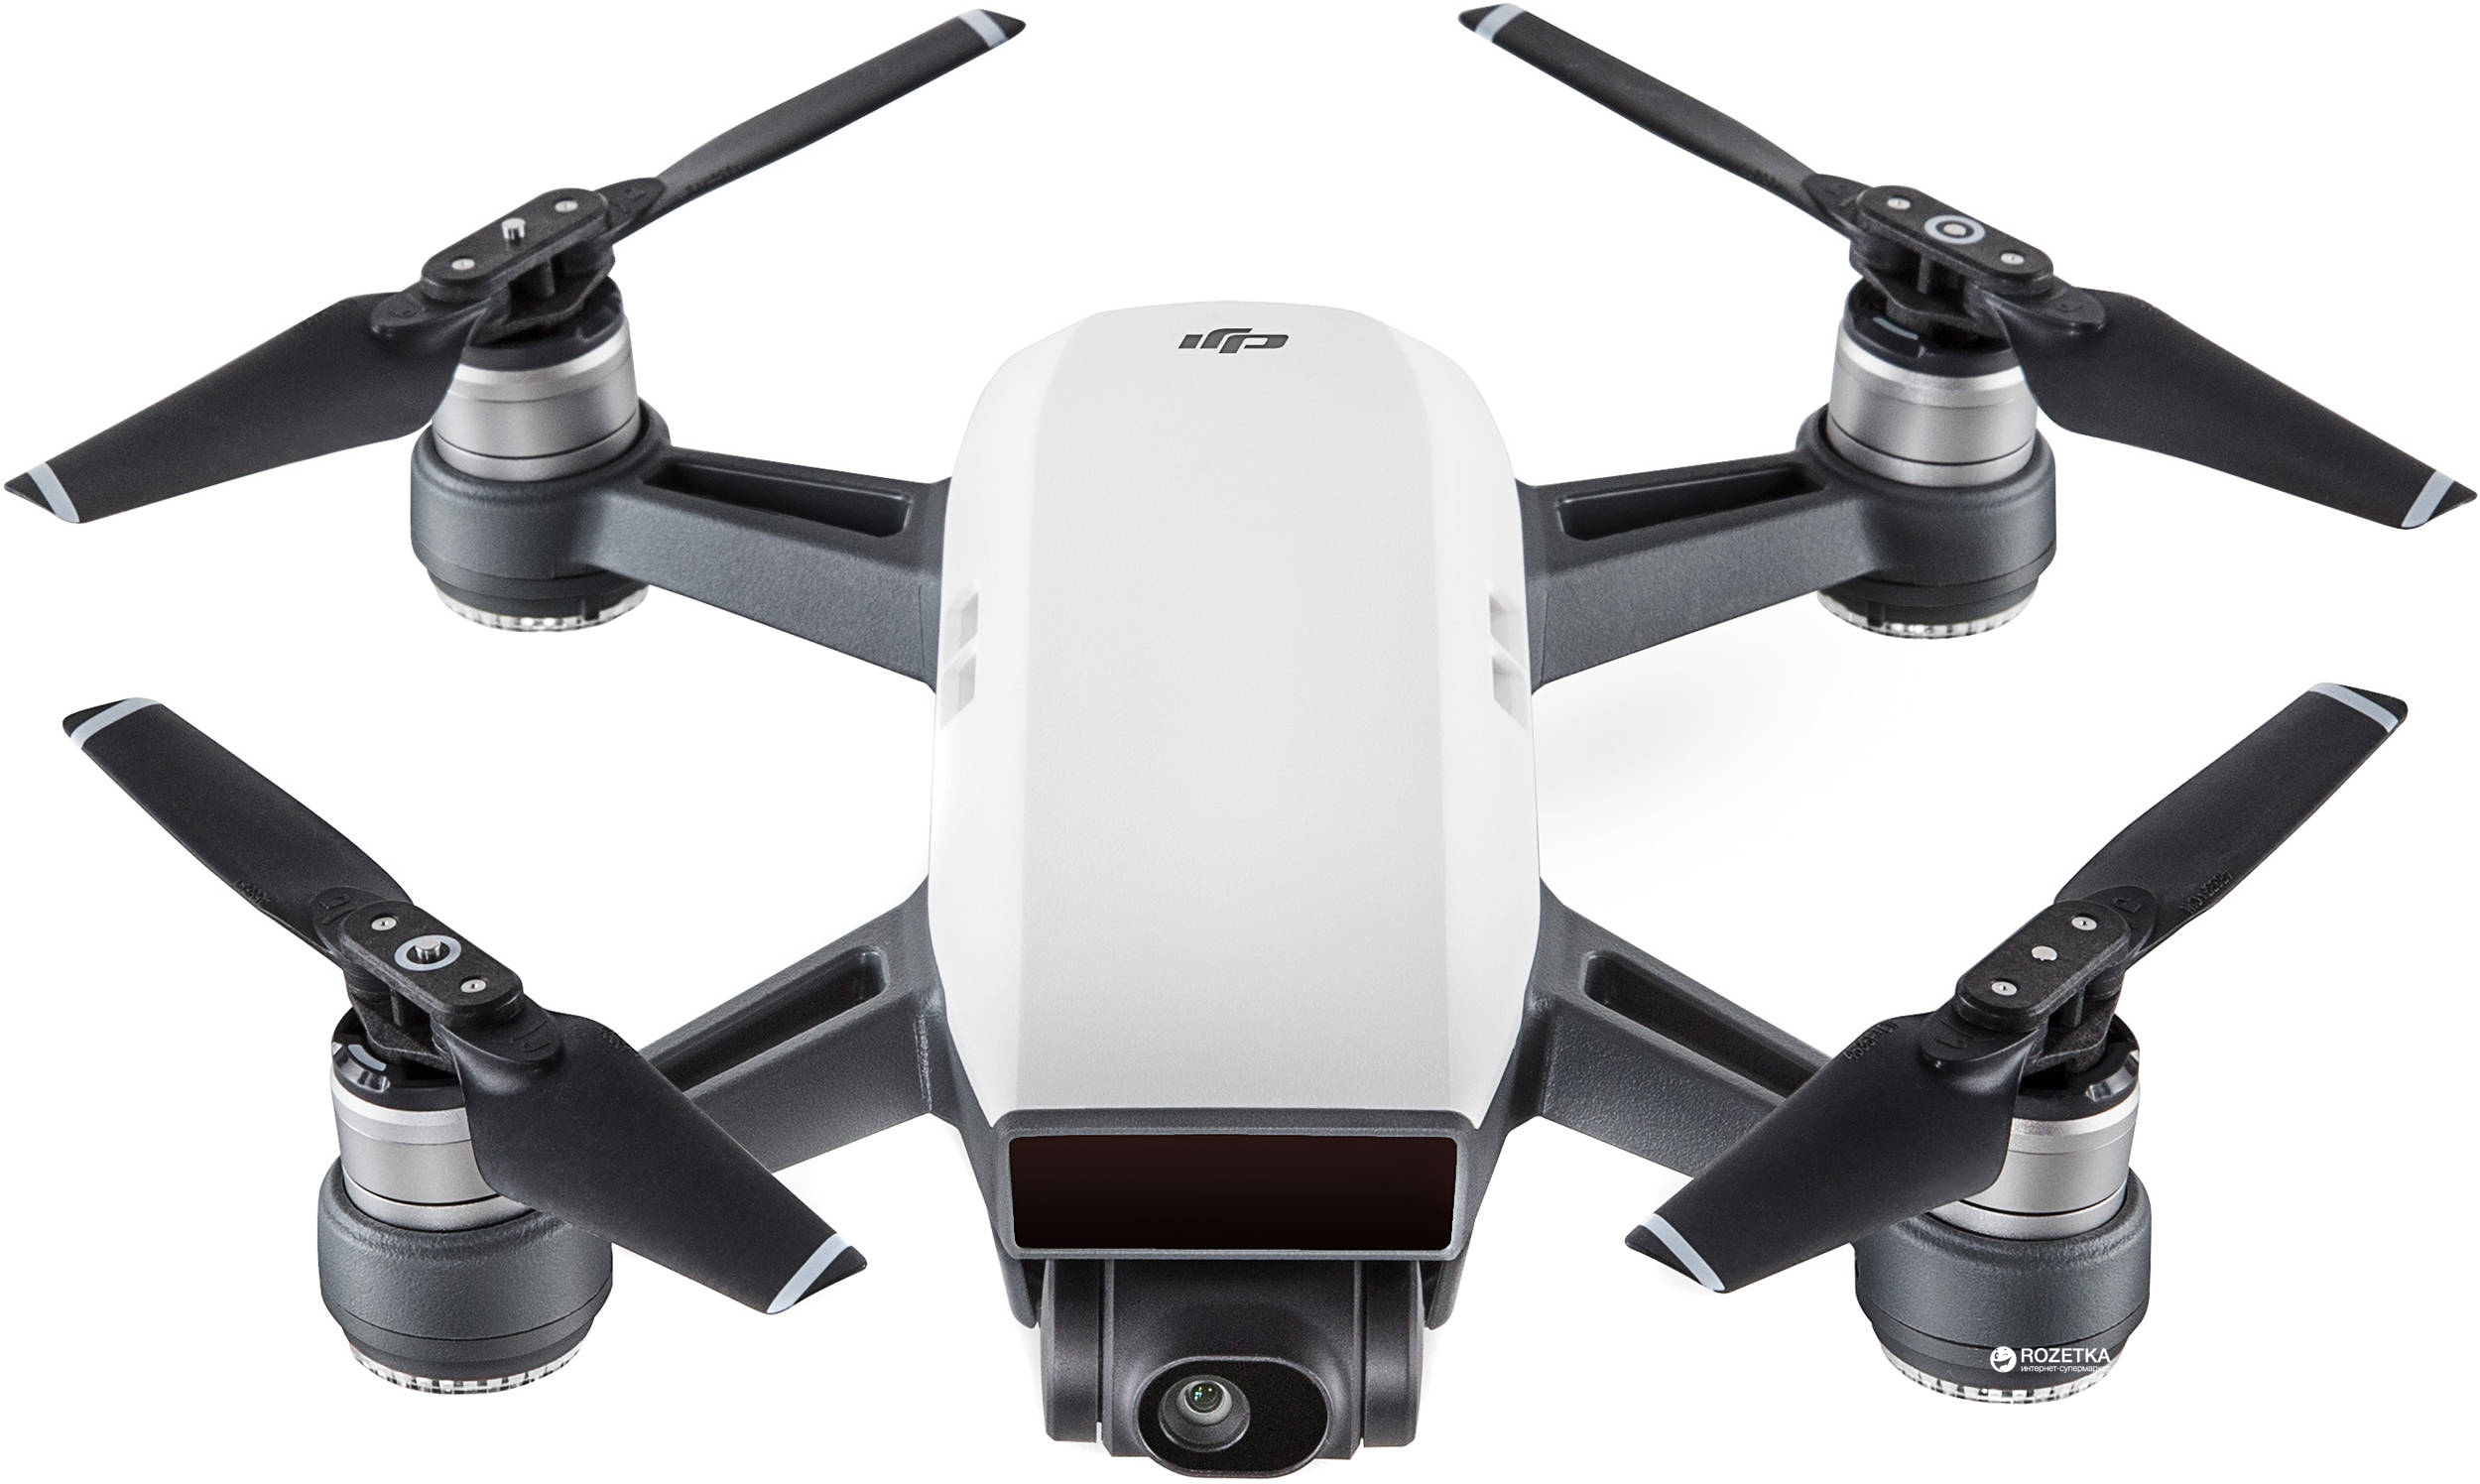 Кофр к коптеру спарк комбо шнур айфон mavic air combo с таобао